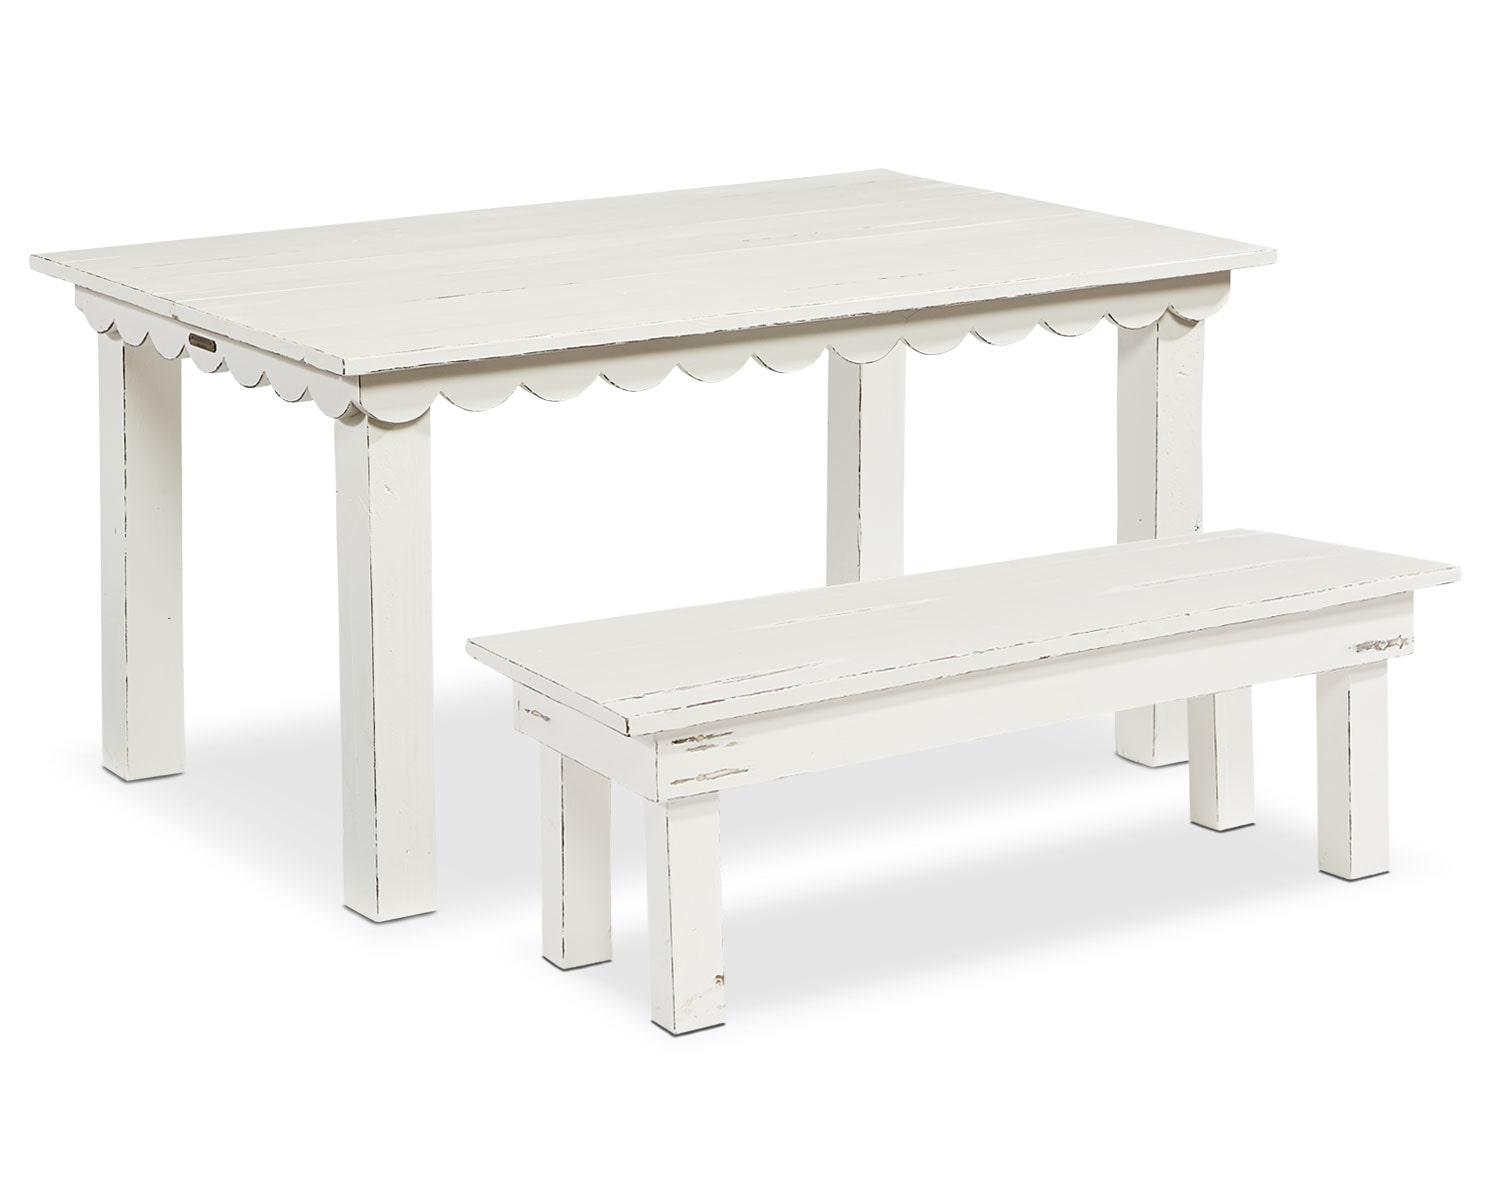 the kidu0027s haven collection - Teen Furniture